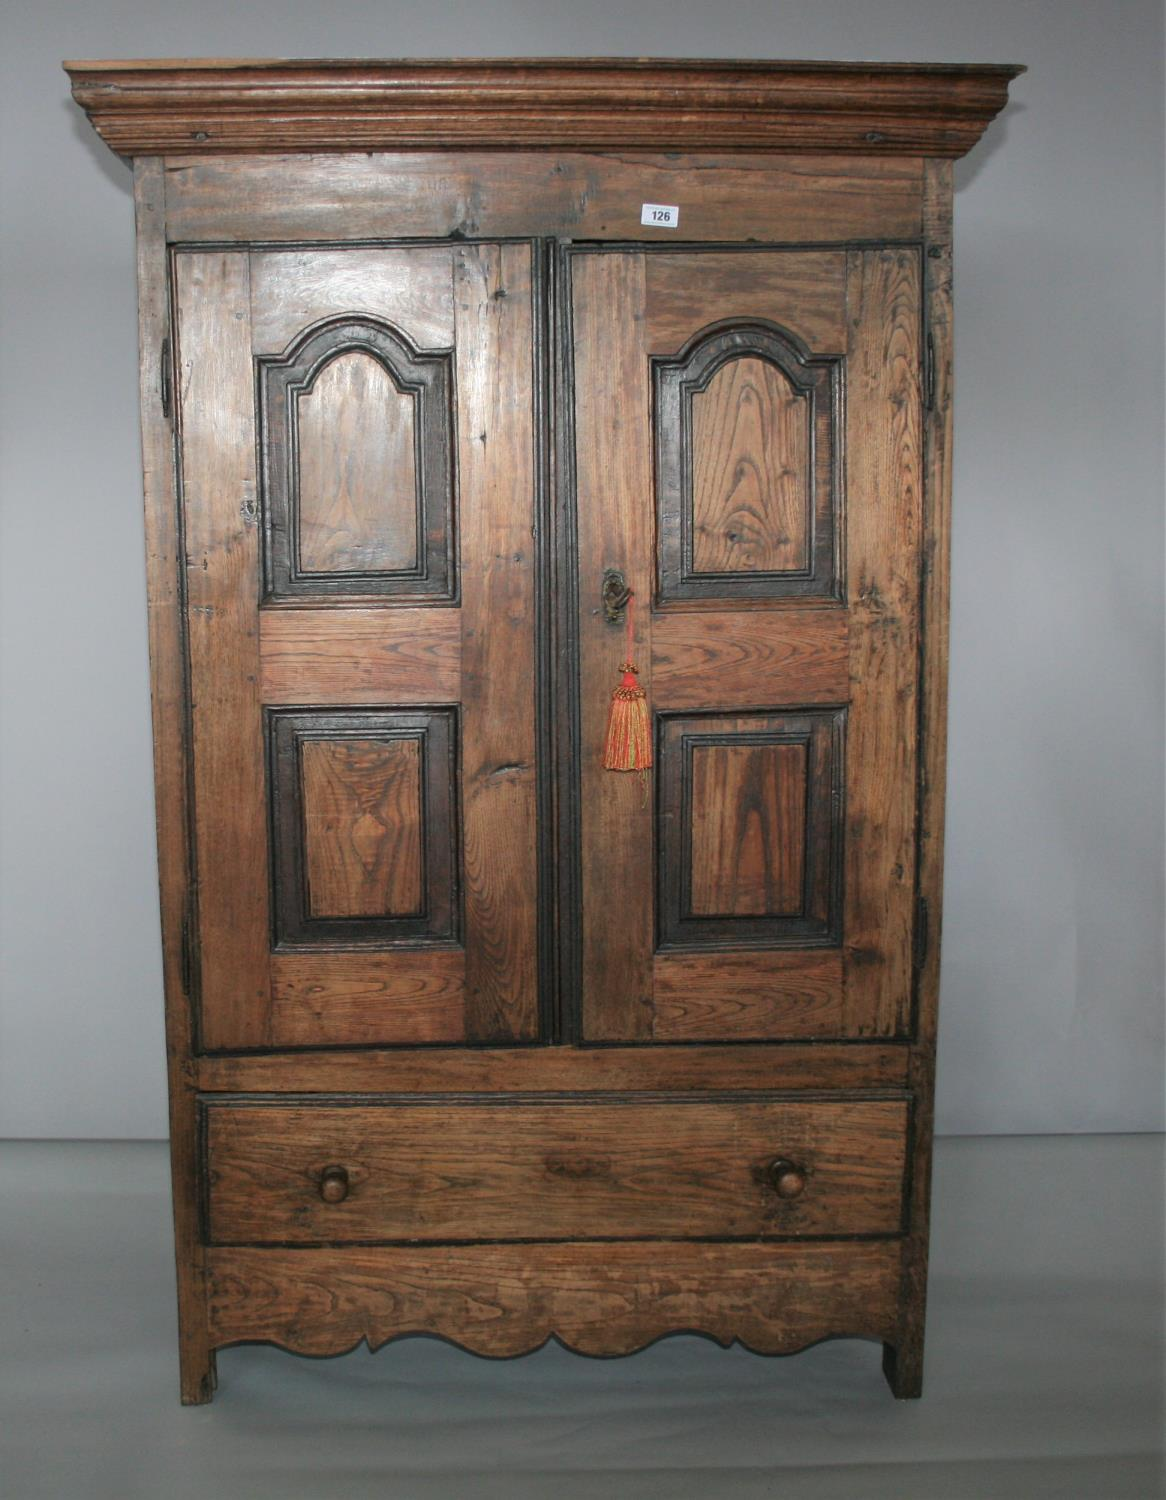 17th Century oak armoire with panel door and sides. 120W x 180H x 52D